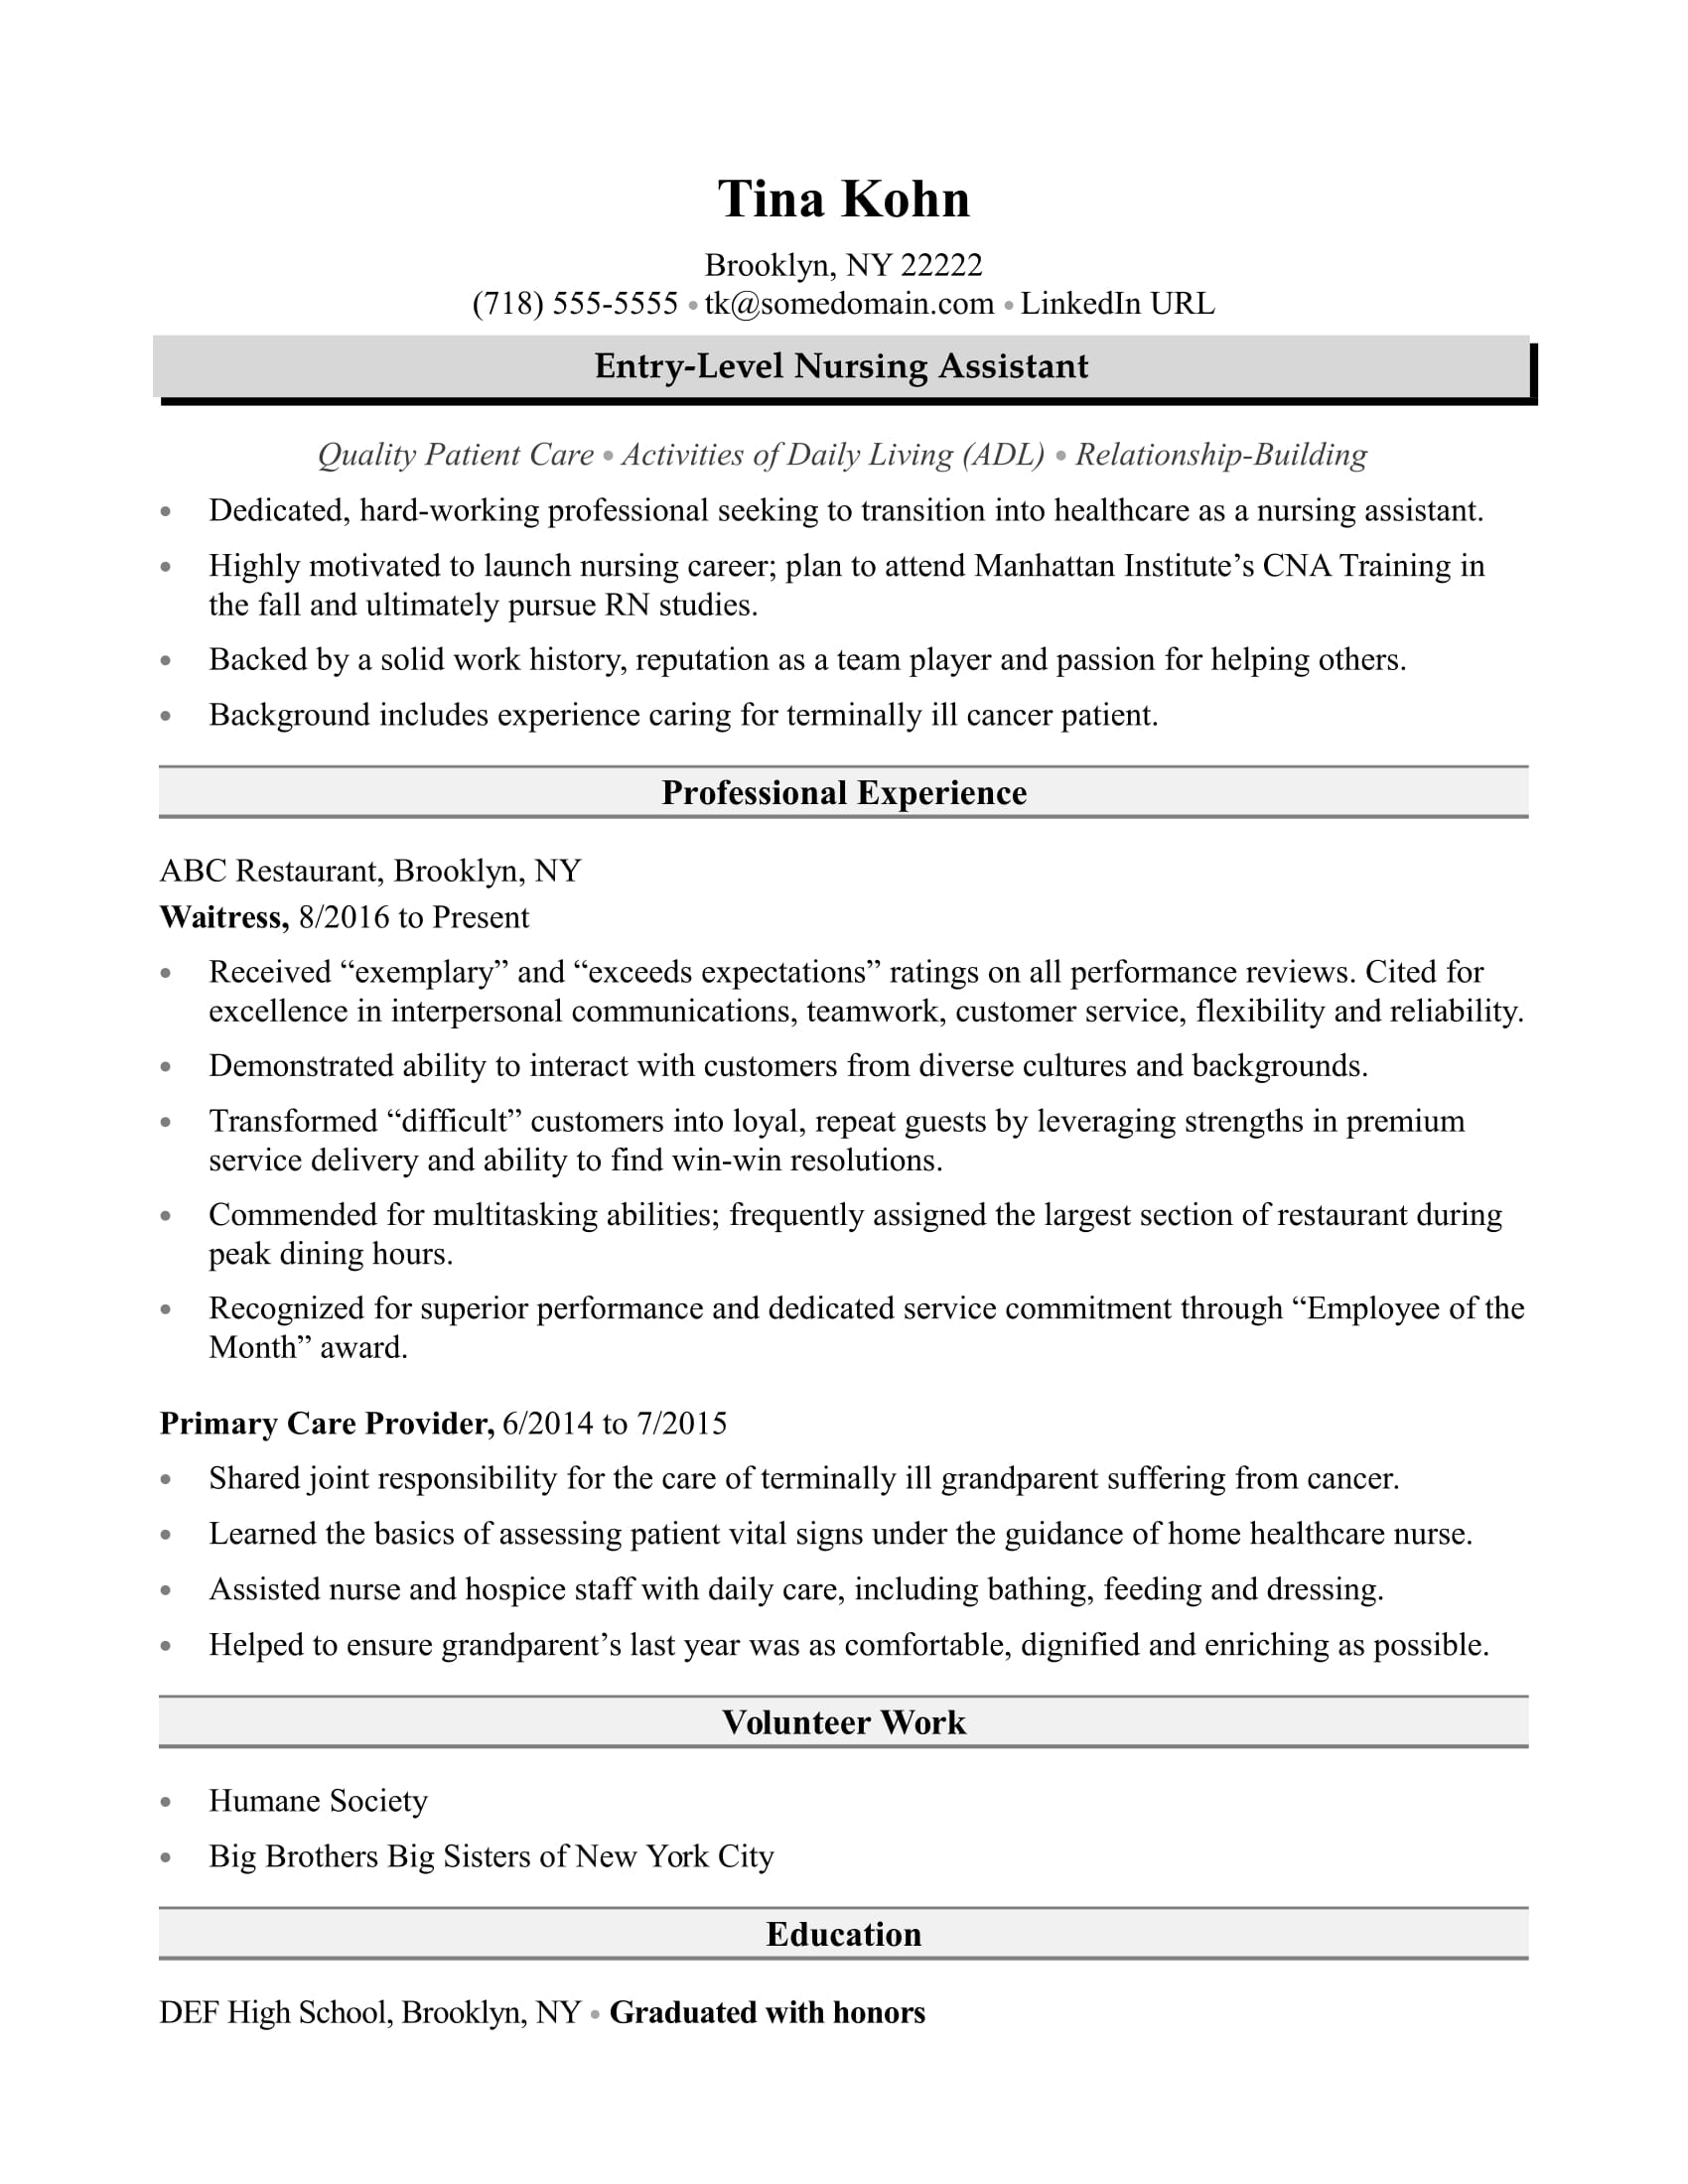 nursing assistant resume sample monster cna description duties medical job excellent Resume Cna Description Duties Resume